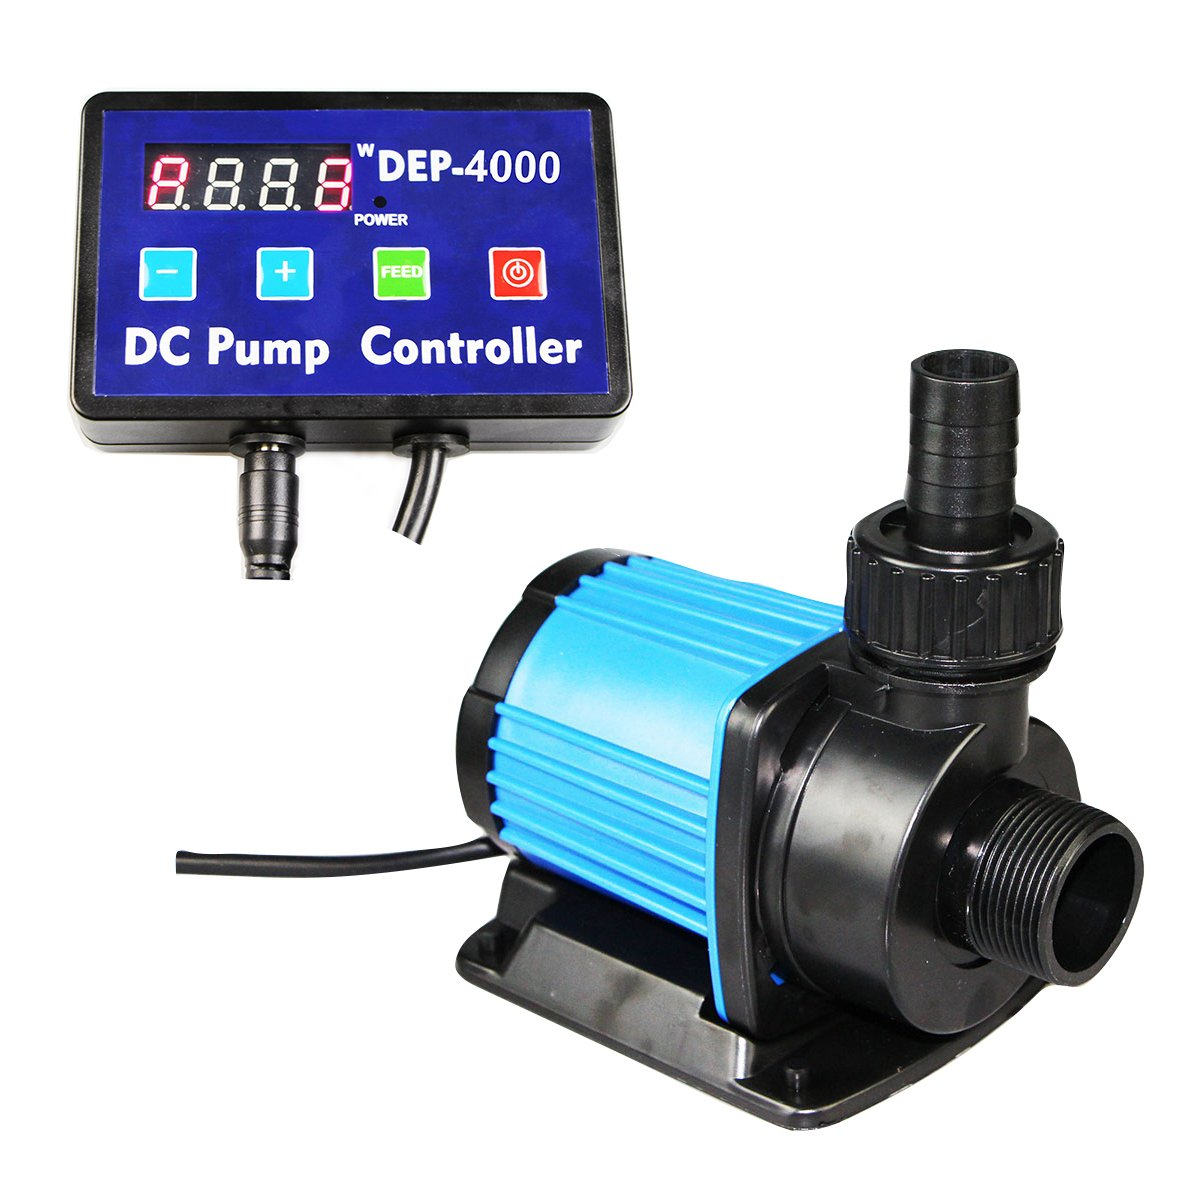 (upgrade) Uniclife DEP-4000 Controllable DC Water Pump 1052 GPH with Controller for Marine Freshwater Aquarium Pond Circulation